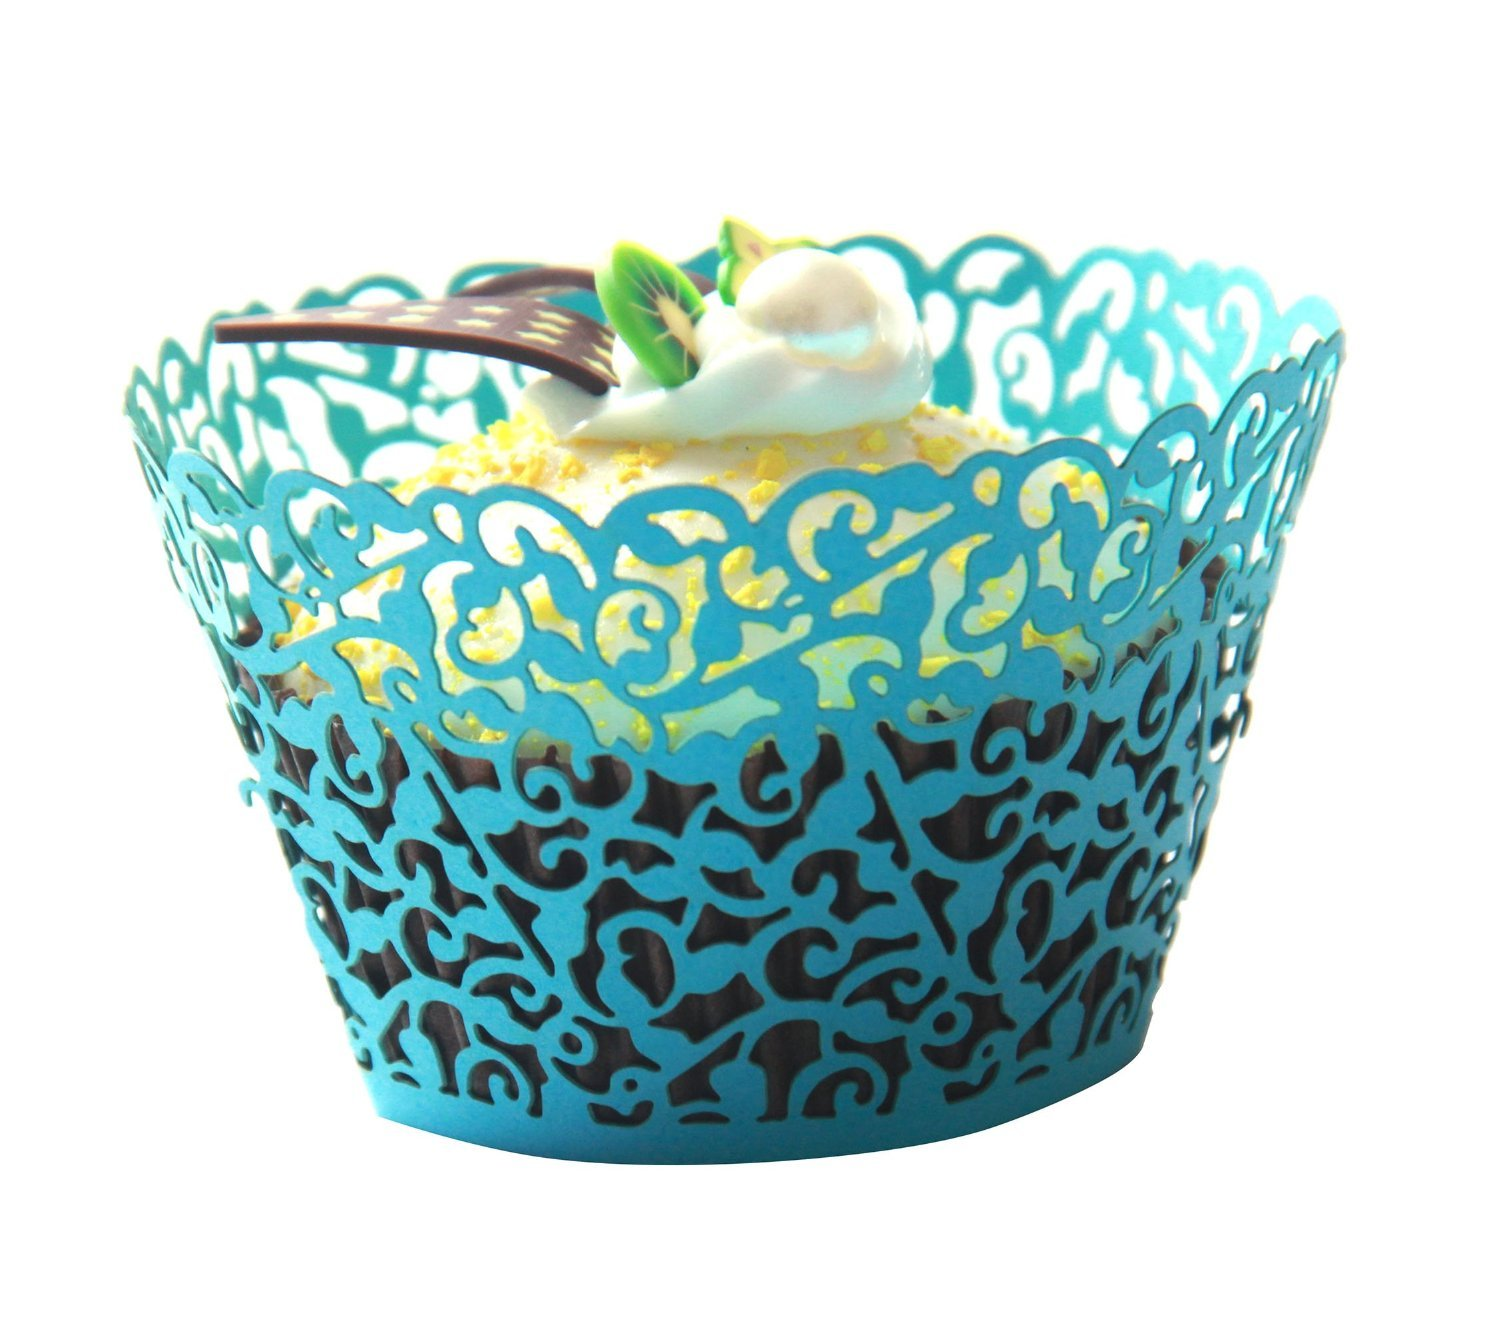 LEFV™ 24pcs Cupcake Wrapper Filigree Little Vine Lace Laser Cut Liner Baking Cup Muffin Case Trays Wraps Wedding Birthday Party Decoration Blue by LEFV (Image #2)